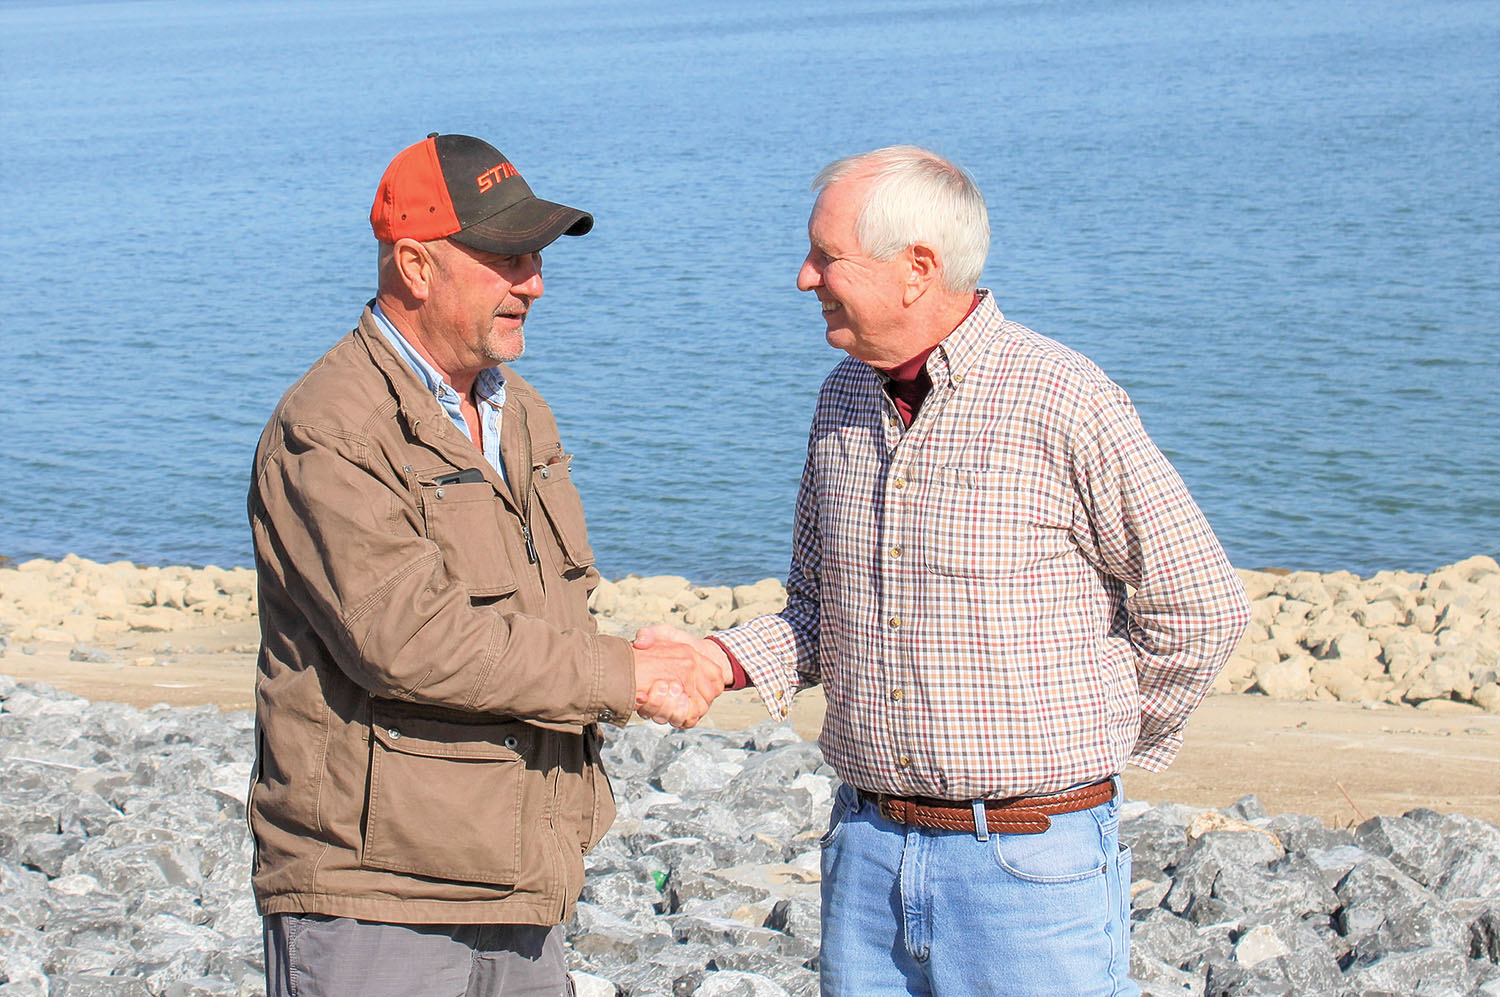 Bruce McGinnis (left) and Rob Erlbacher shake hands following the sale of floating assets belonging to Erlbacher's Missouri Dry Dock & Repair Company Inc. to McGinnis's McNational Inc. The men have been friends about 15 years and began discussing the private sale about a year ago. Missouri Dry Dock is retaining its machine shop and propeller shop. (Photo by Shelley Byrne)